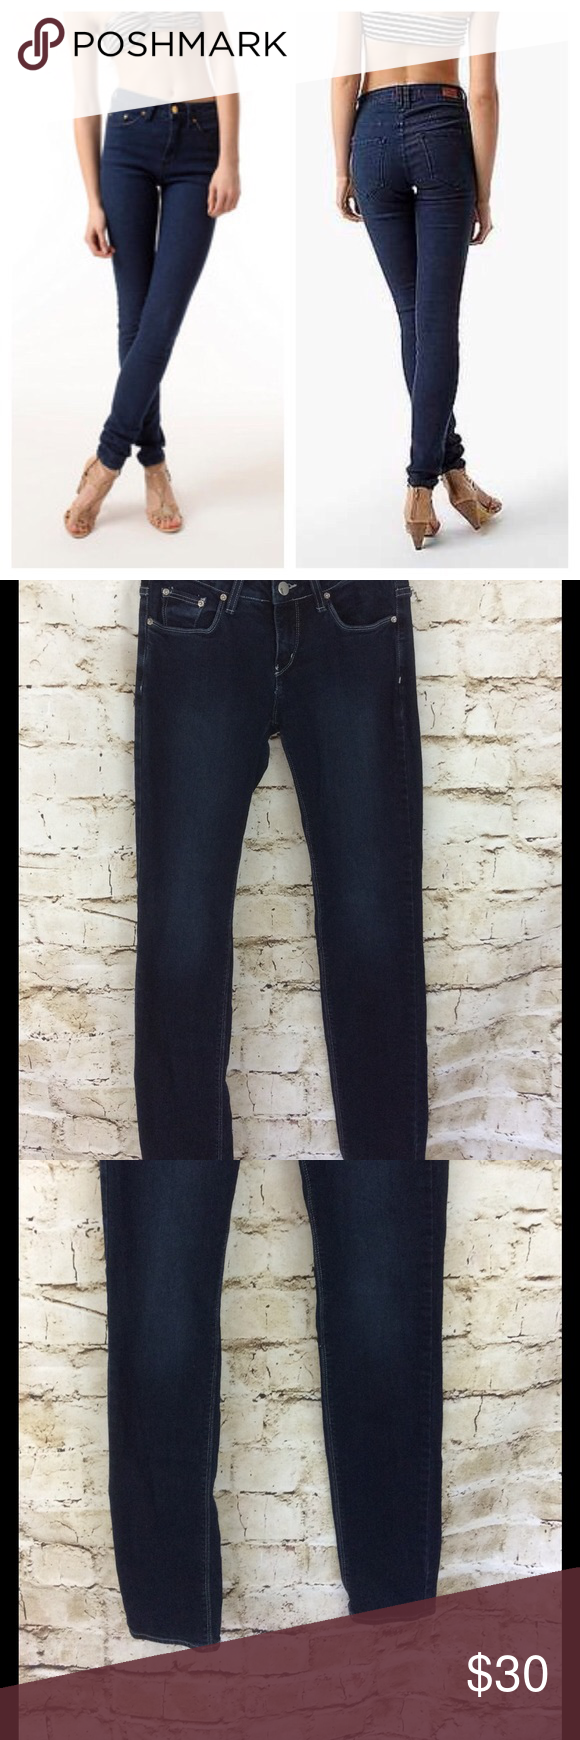 """Urban Outfitters BDG skinny jeans Perfect dark blue skinny jeans!  Great fit high rise jeans no fading excellent condition 32"""" inseam Urban Outfitters Jeans Skinny"""